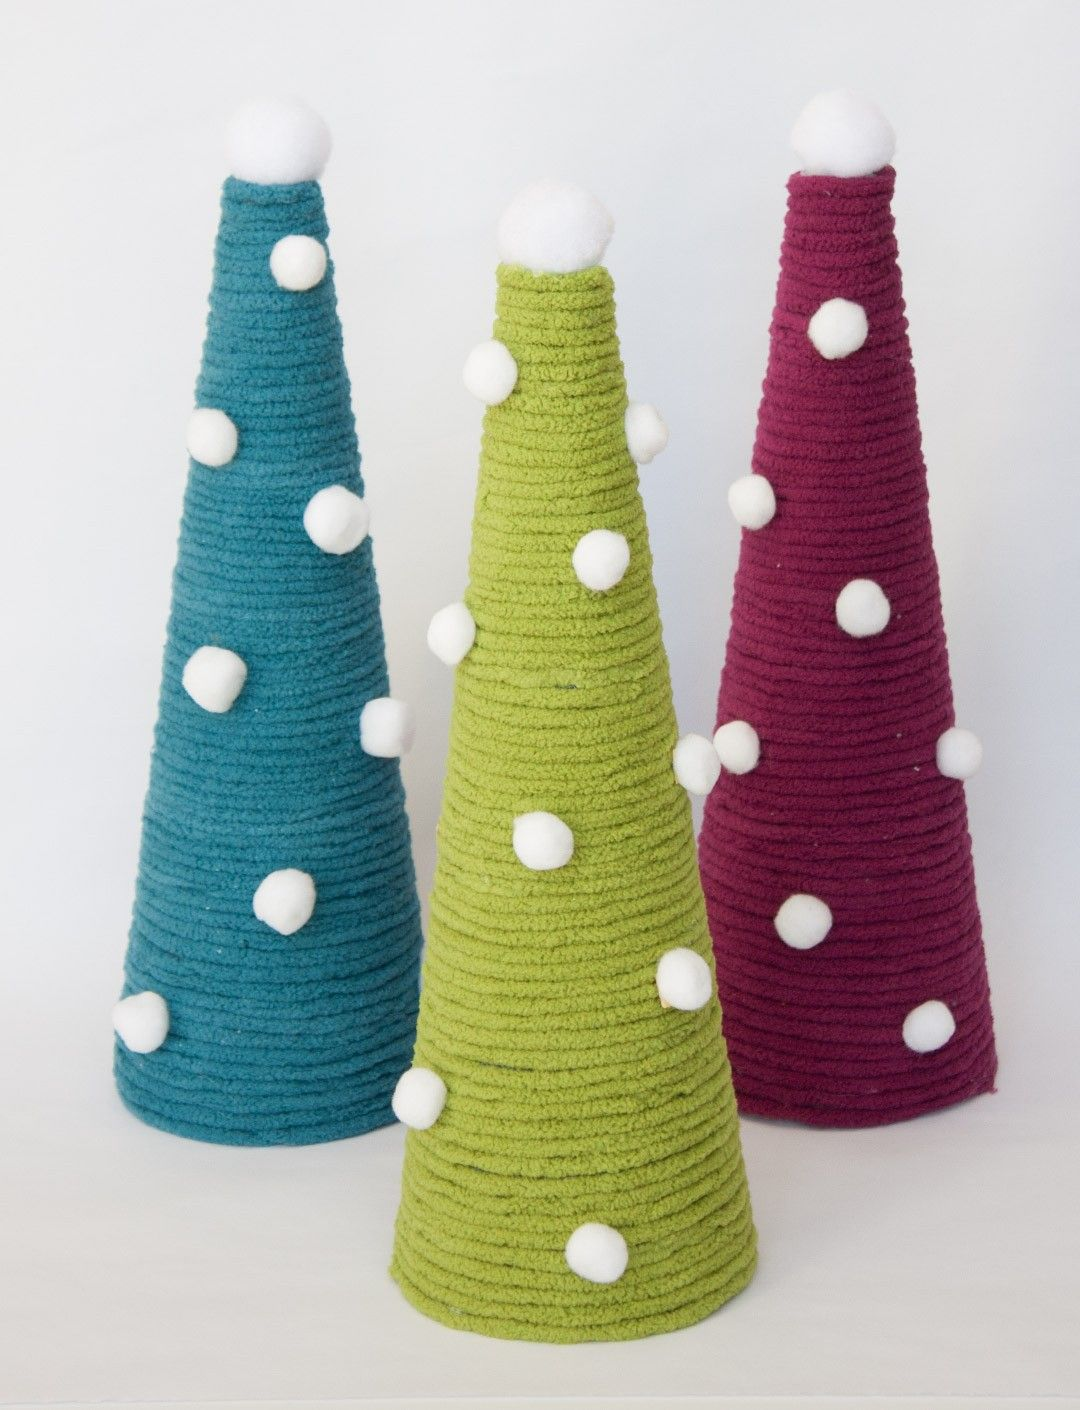 Yarnspirations.com - Bernat Christmas Trees - Patterns ...